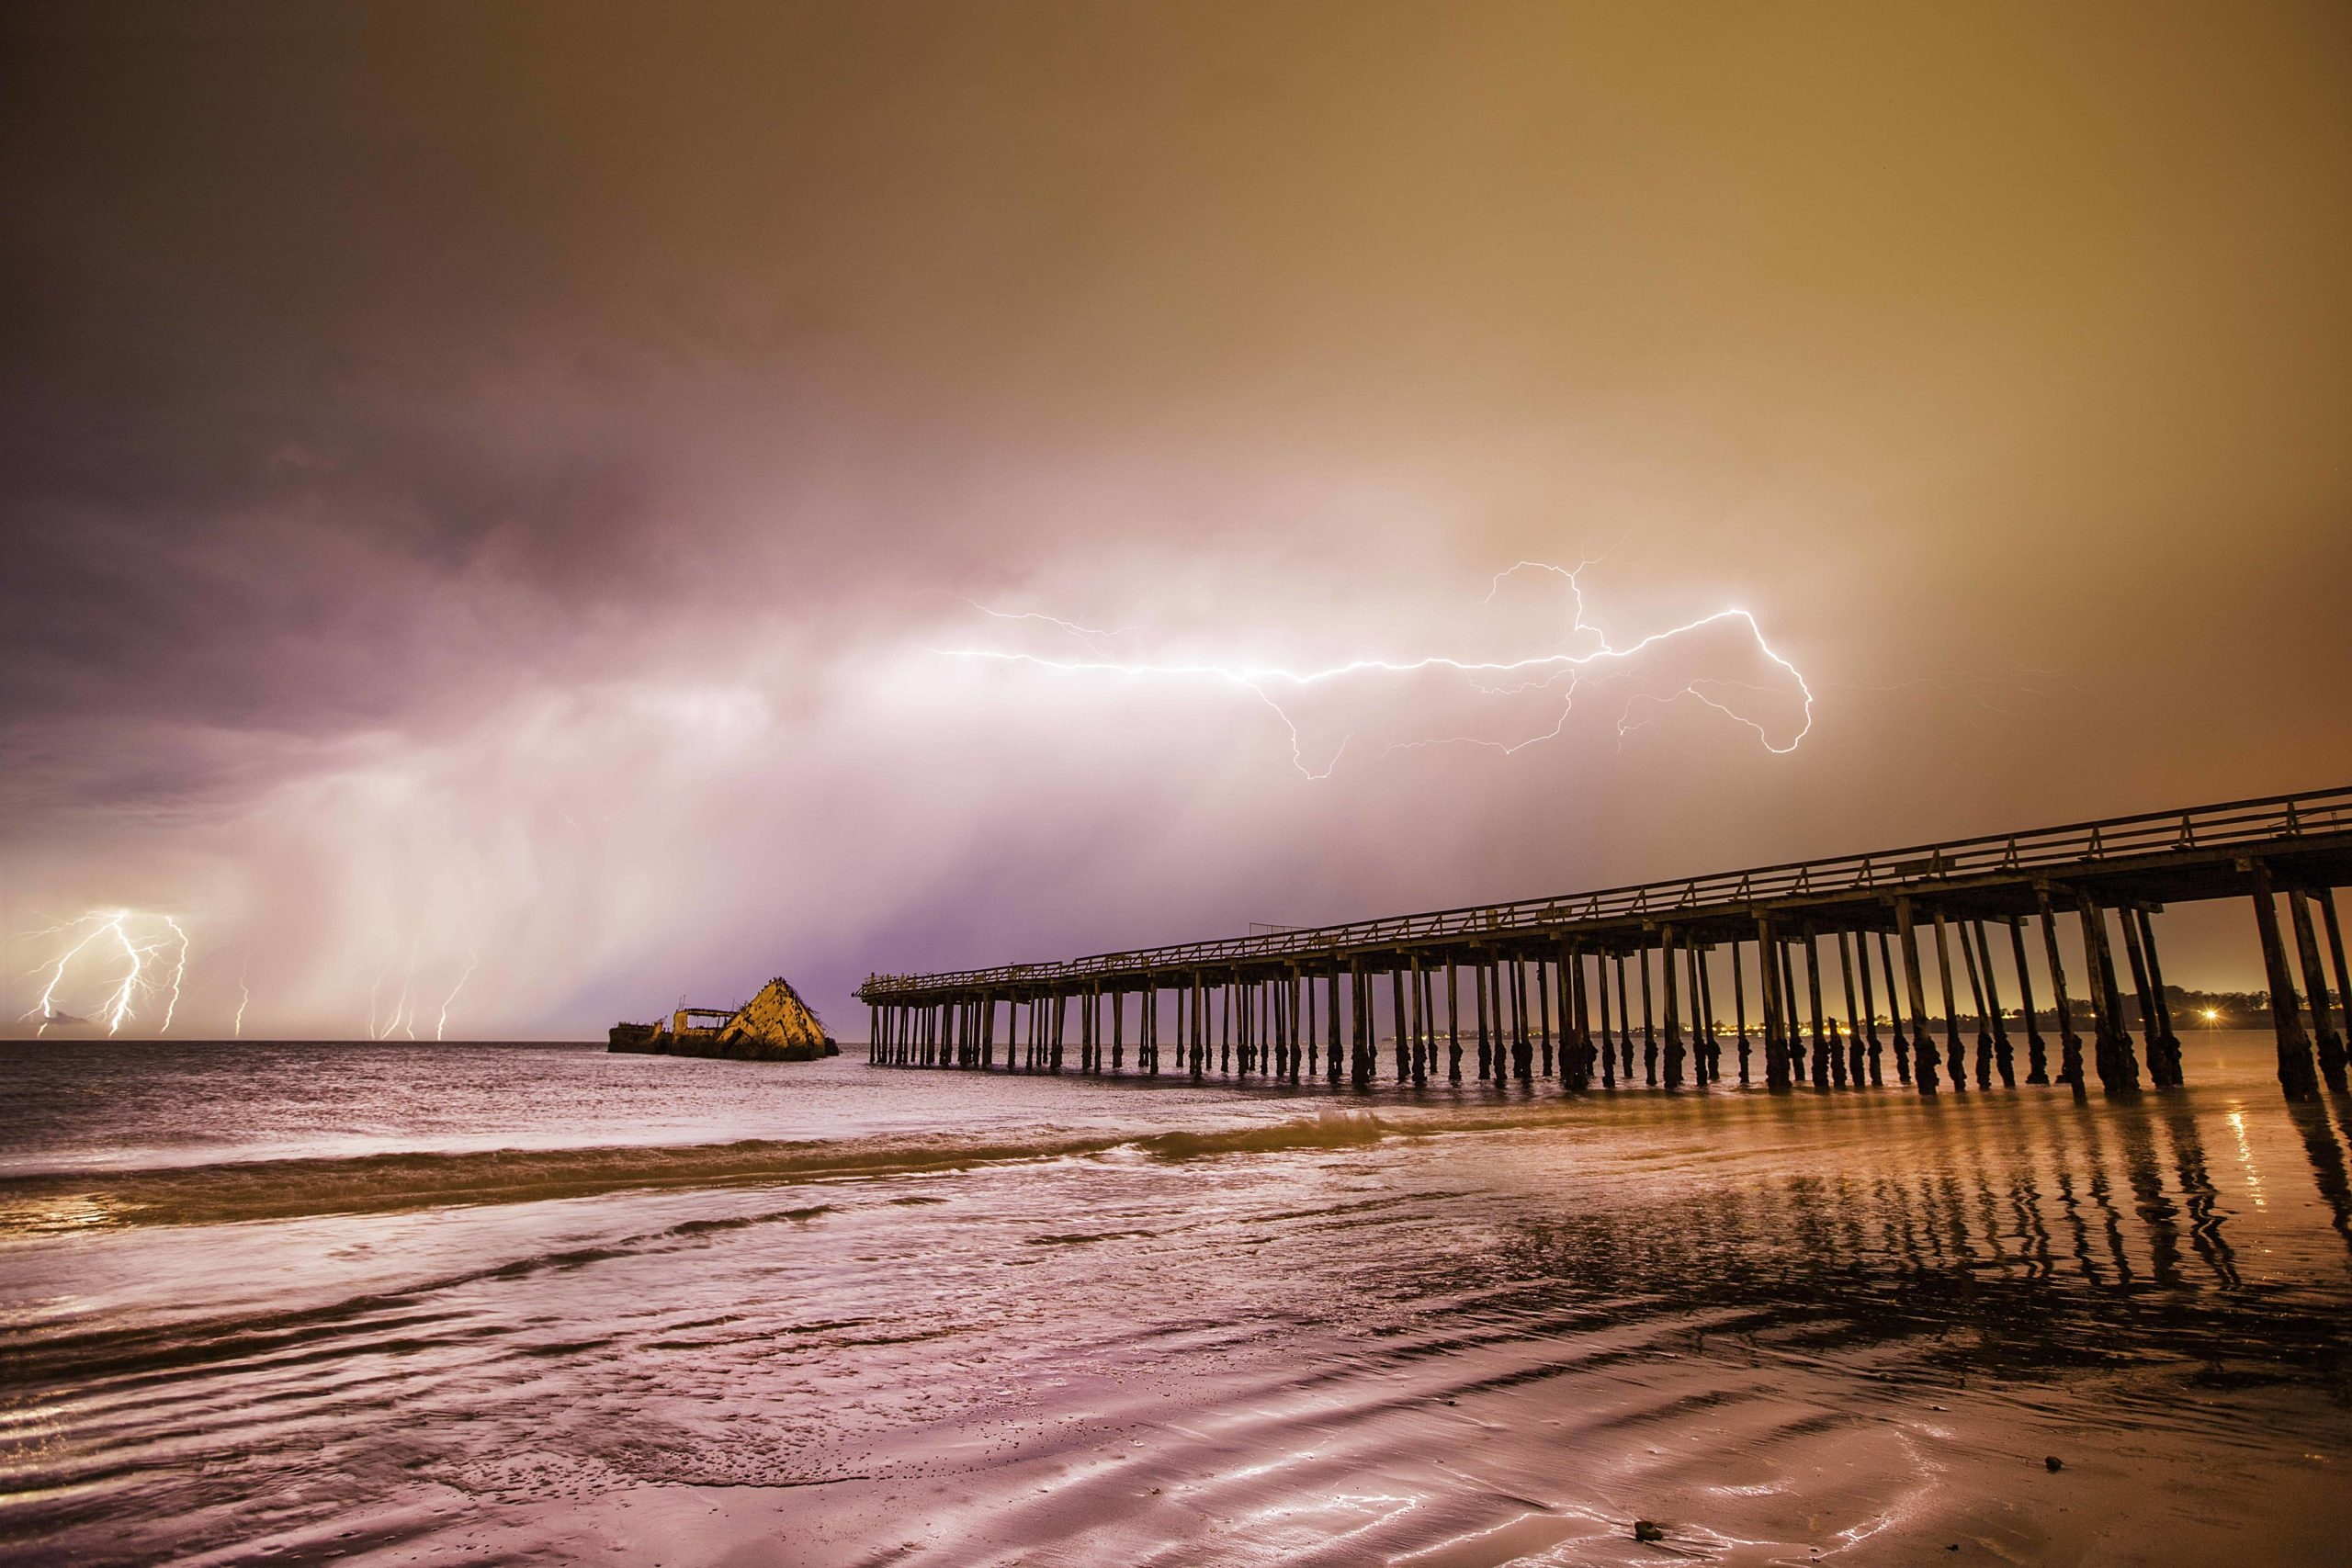 A bright purple and pink view of the cement ship at the end of a pier with a bolt of lightening creeping across the sky above.